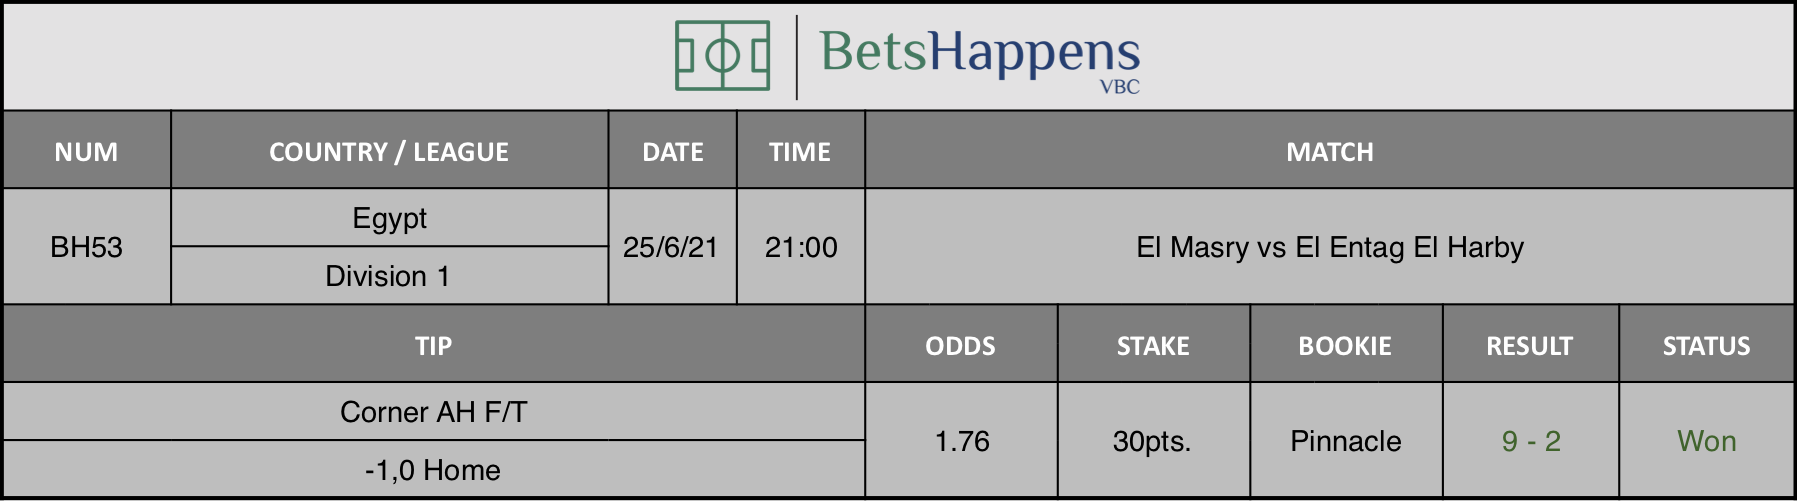 Results of our tip for the El Masry vs El Entag El Harby match Corner AH F/T -1,0 Home is recommended.